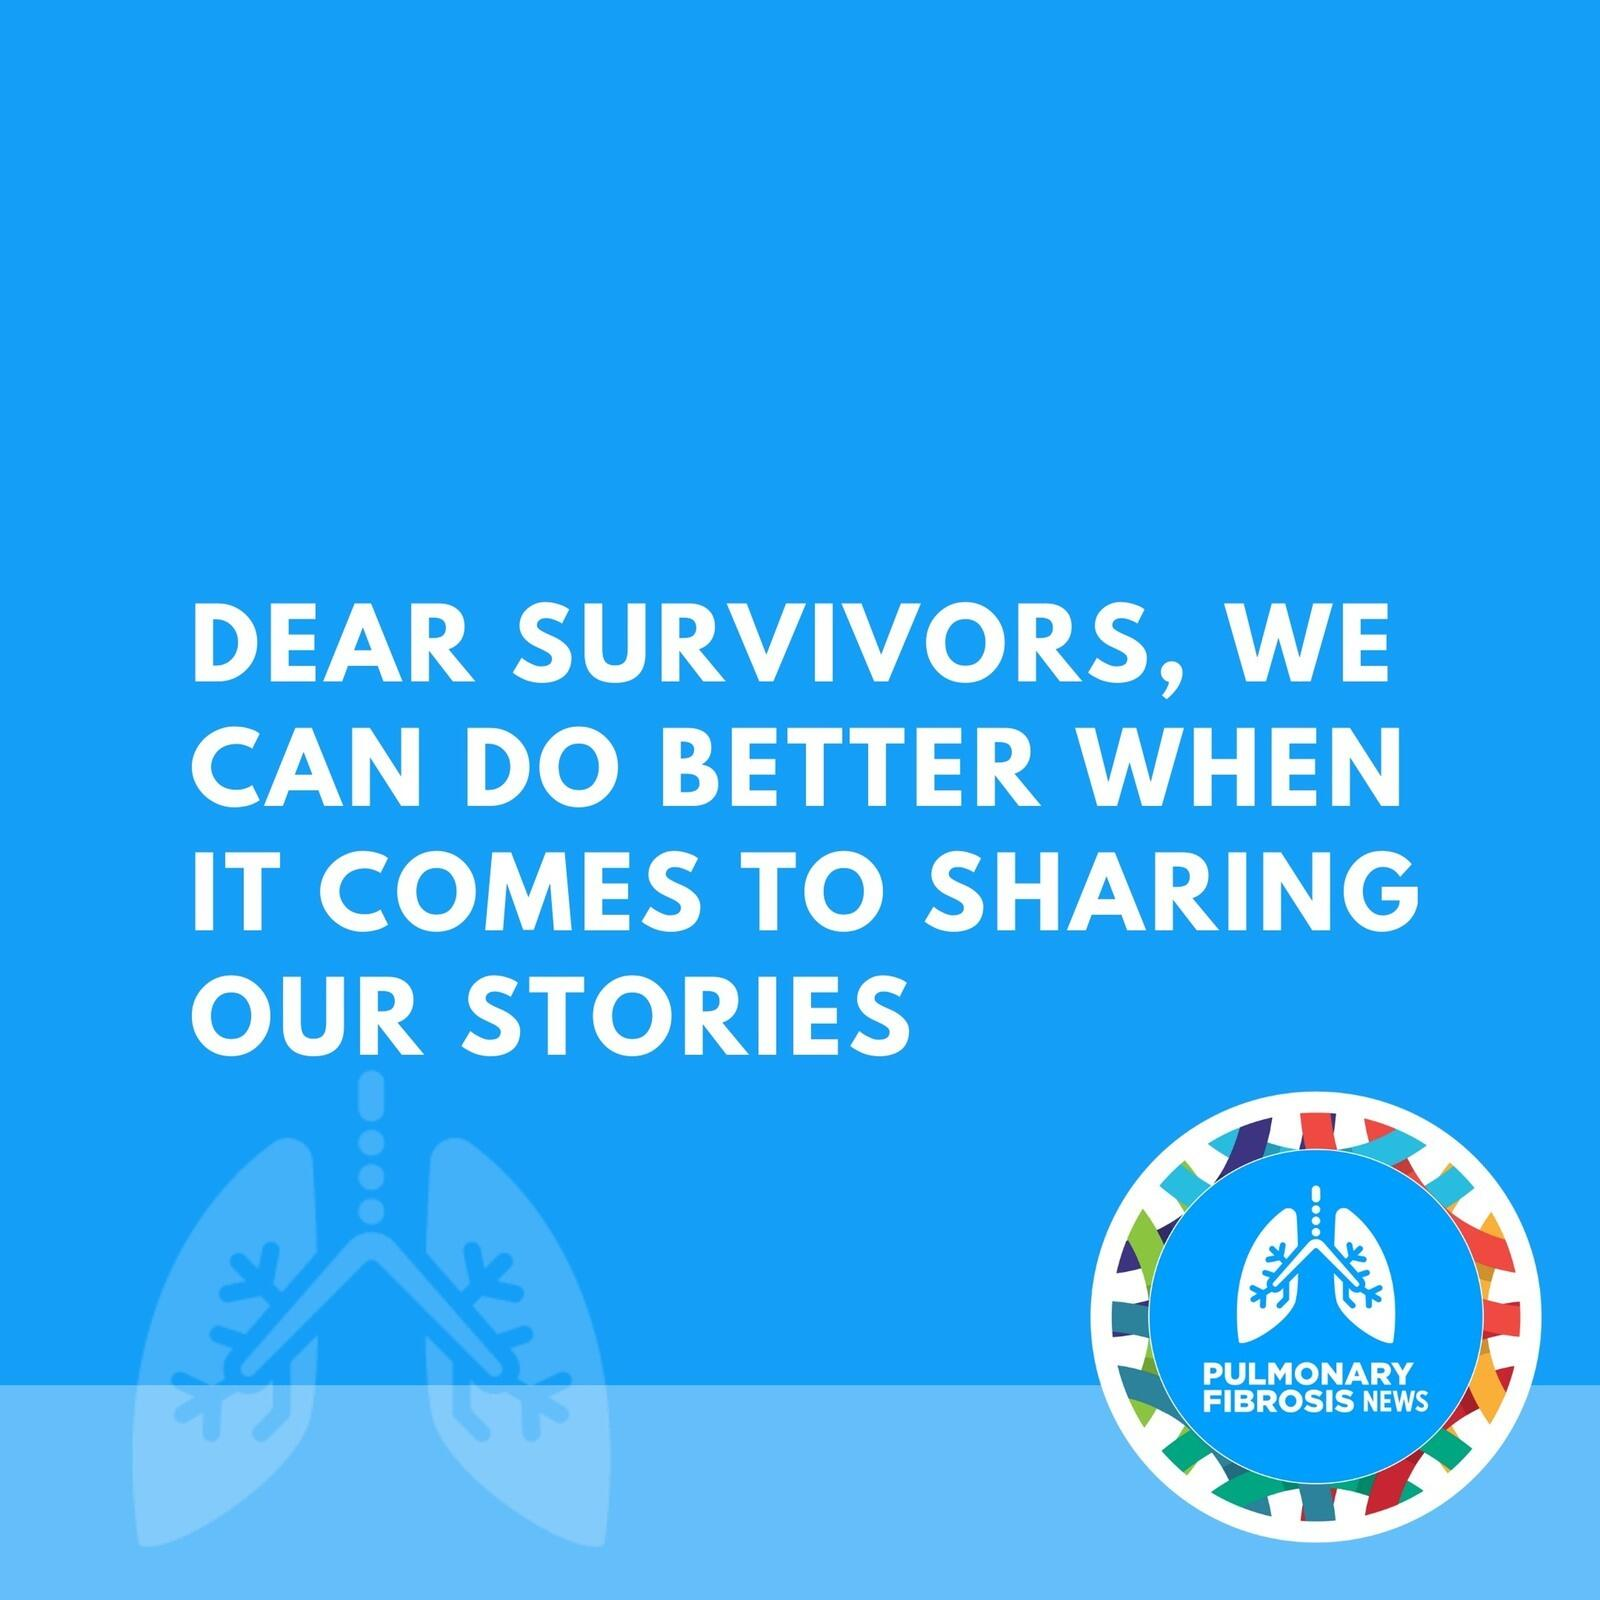 Dear Survivors, We Can Do Better When It Comes to Sharing Our Stories